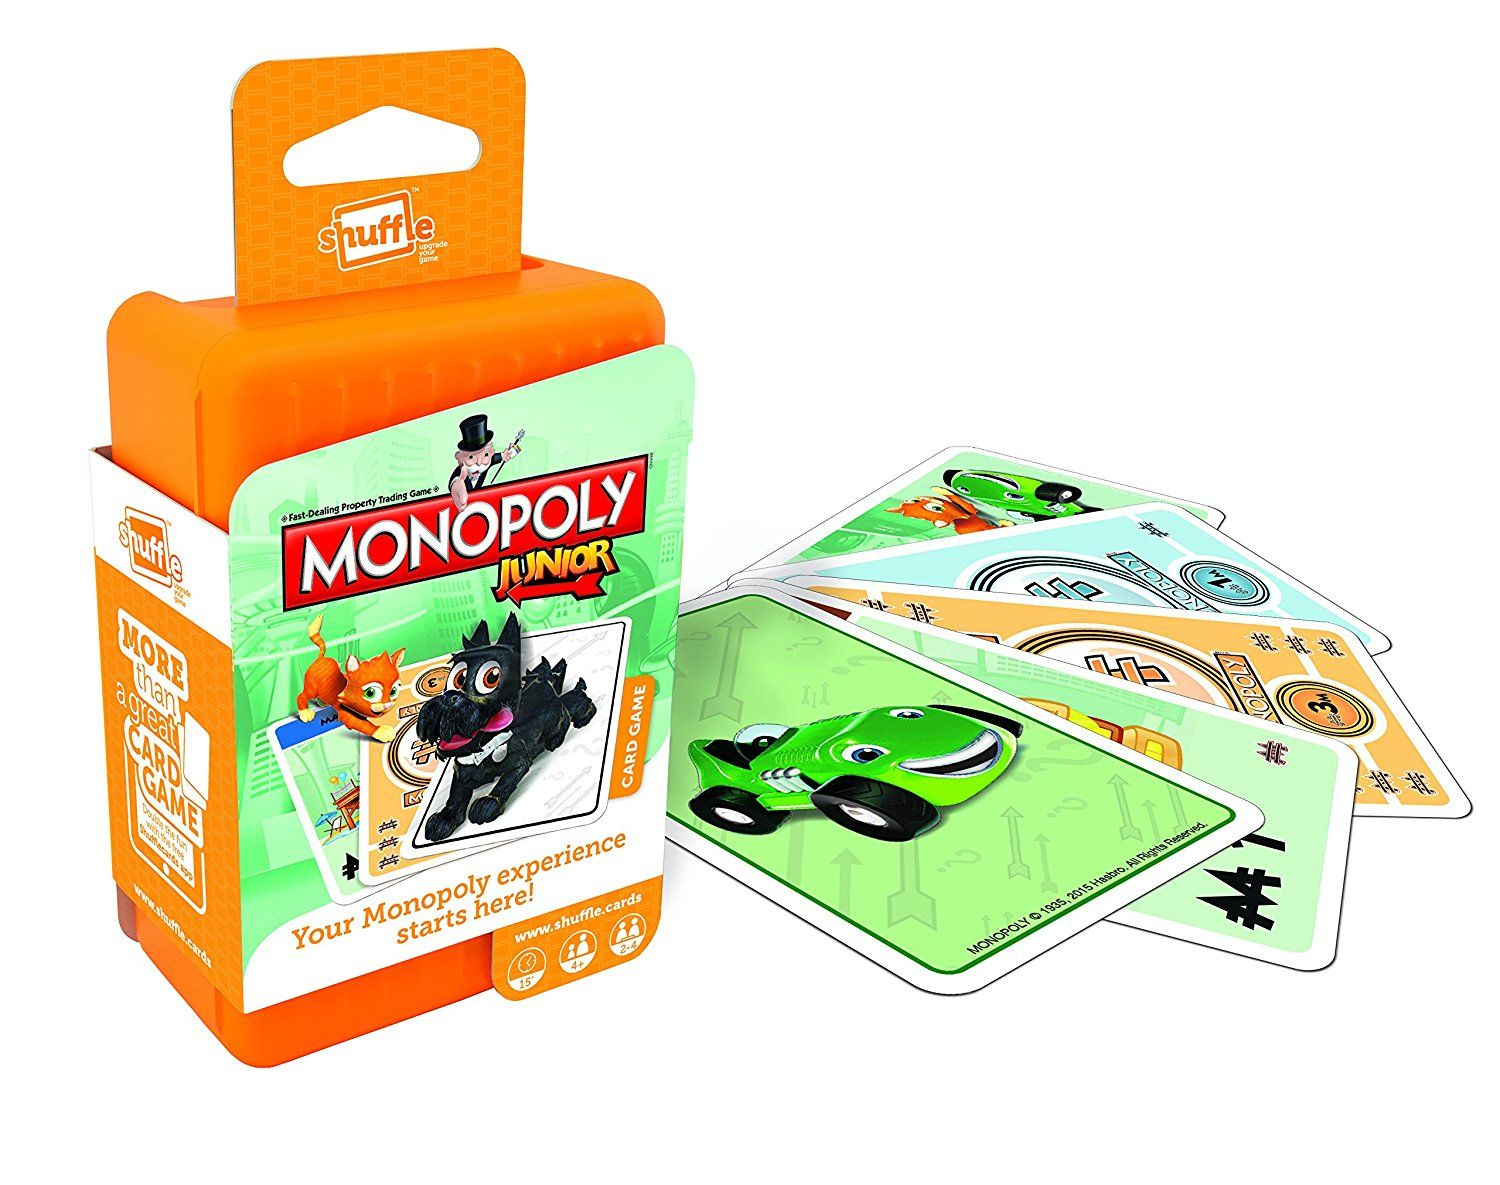 Shuffle Monopoly Junior Children's Card Game Monopoly